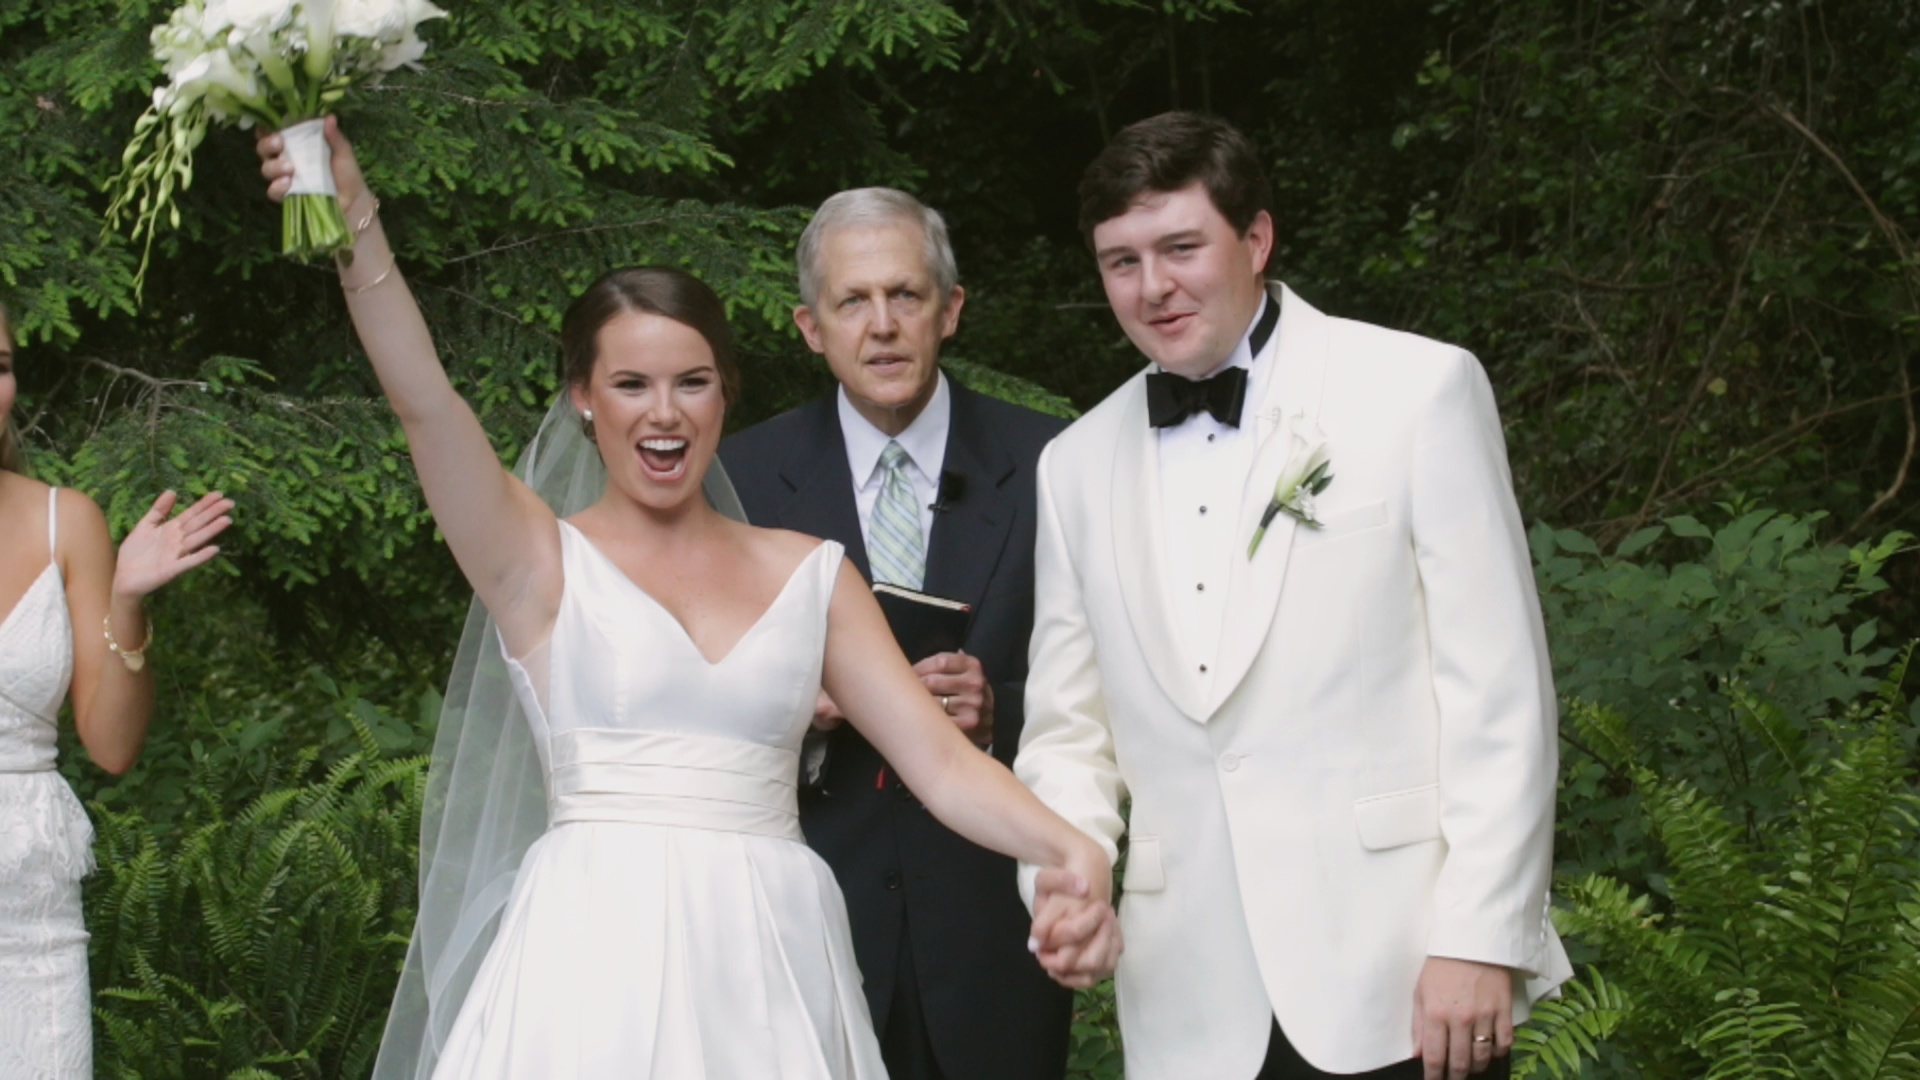 Greenville Covid Wedding Video